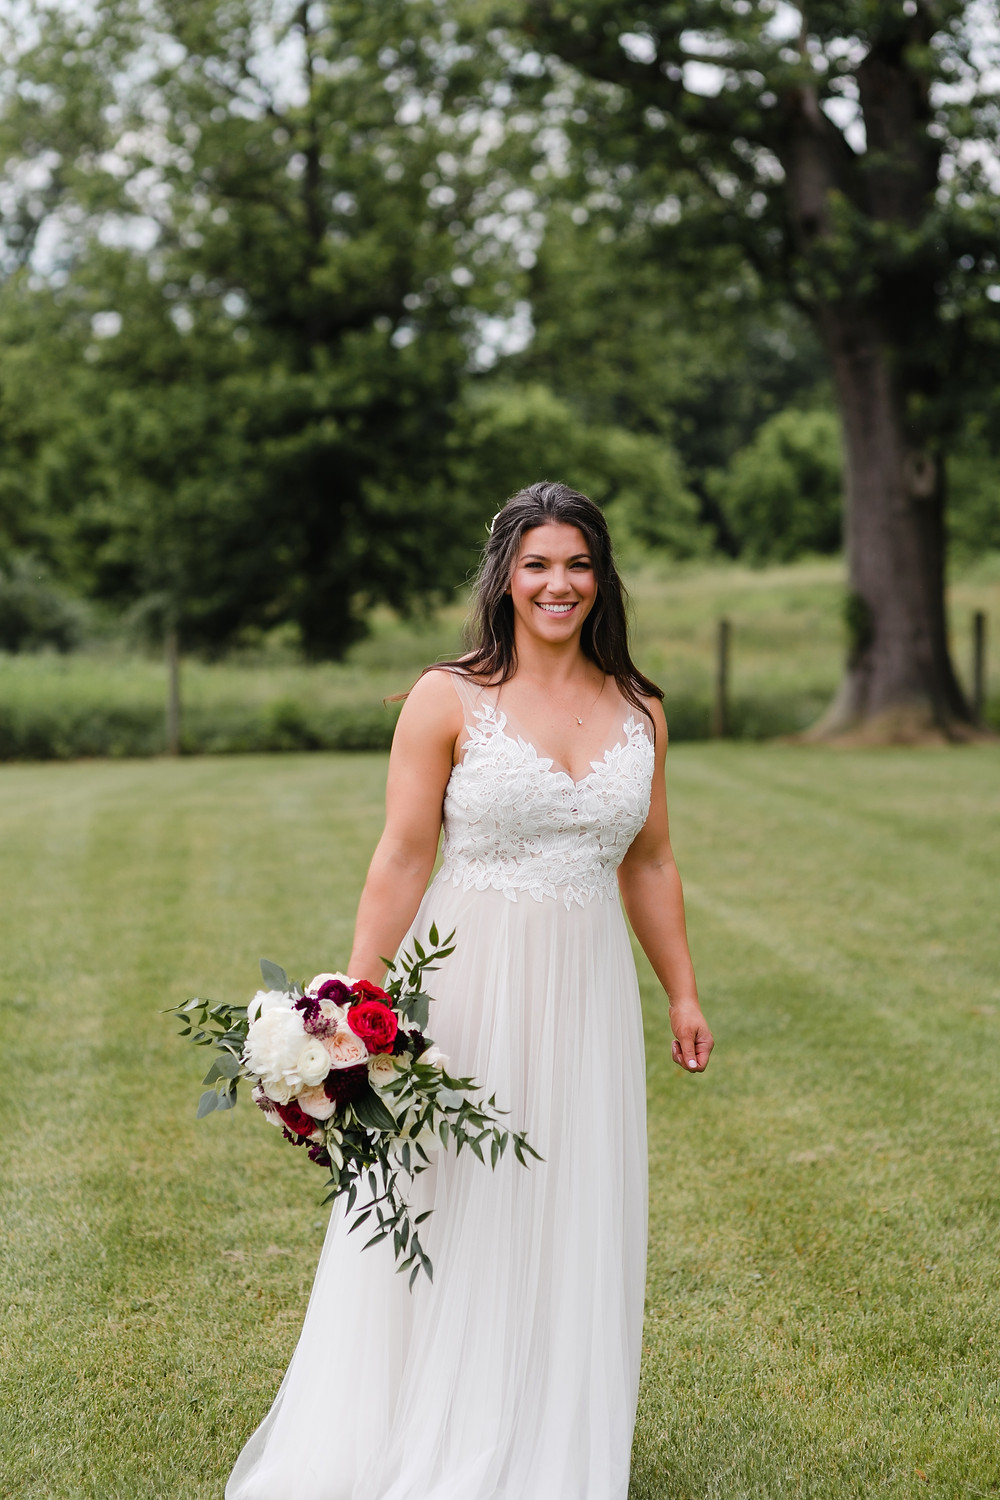 bride wearing wedding dress and carrying bouquet of flowers